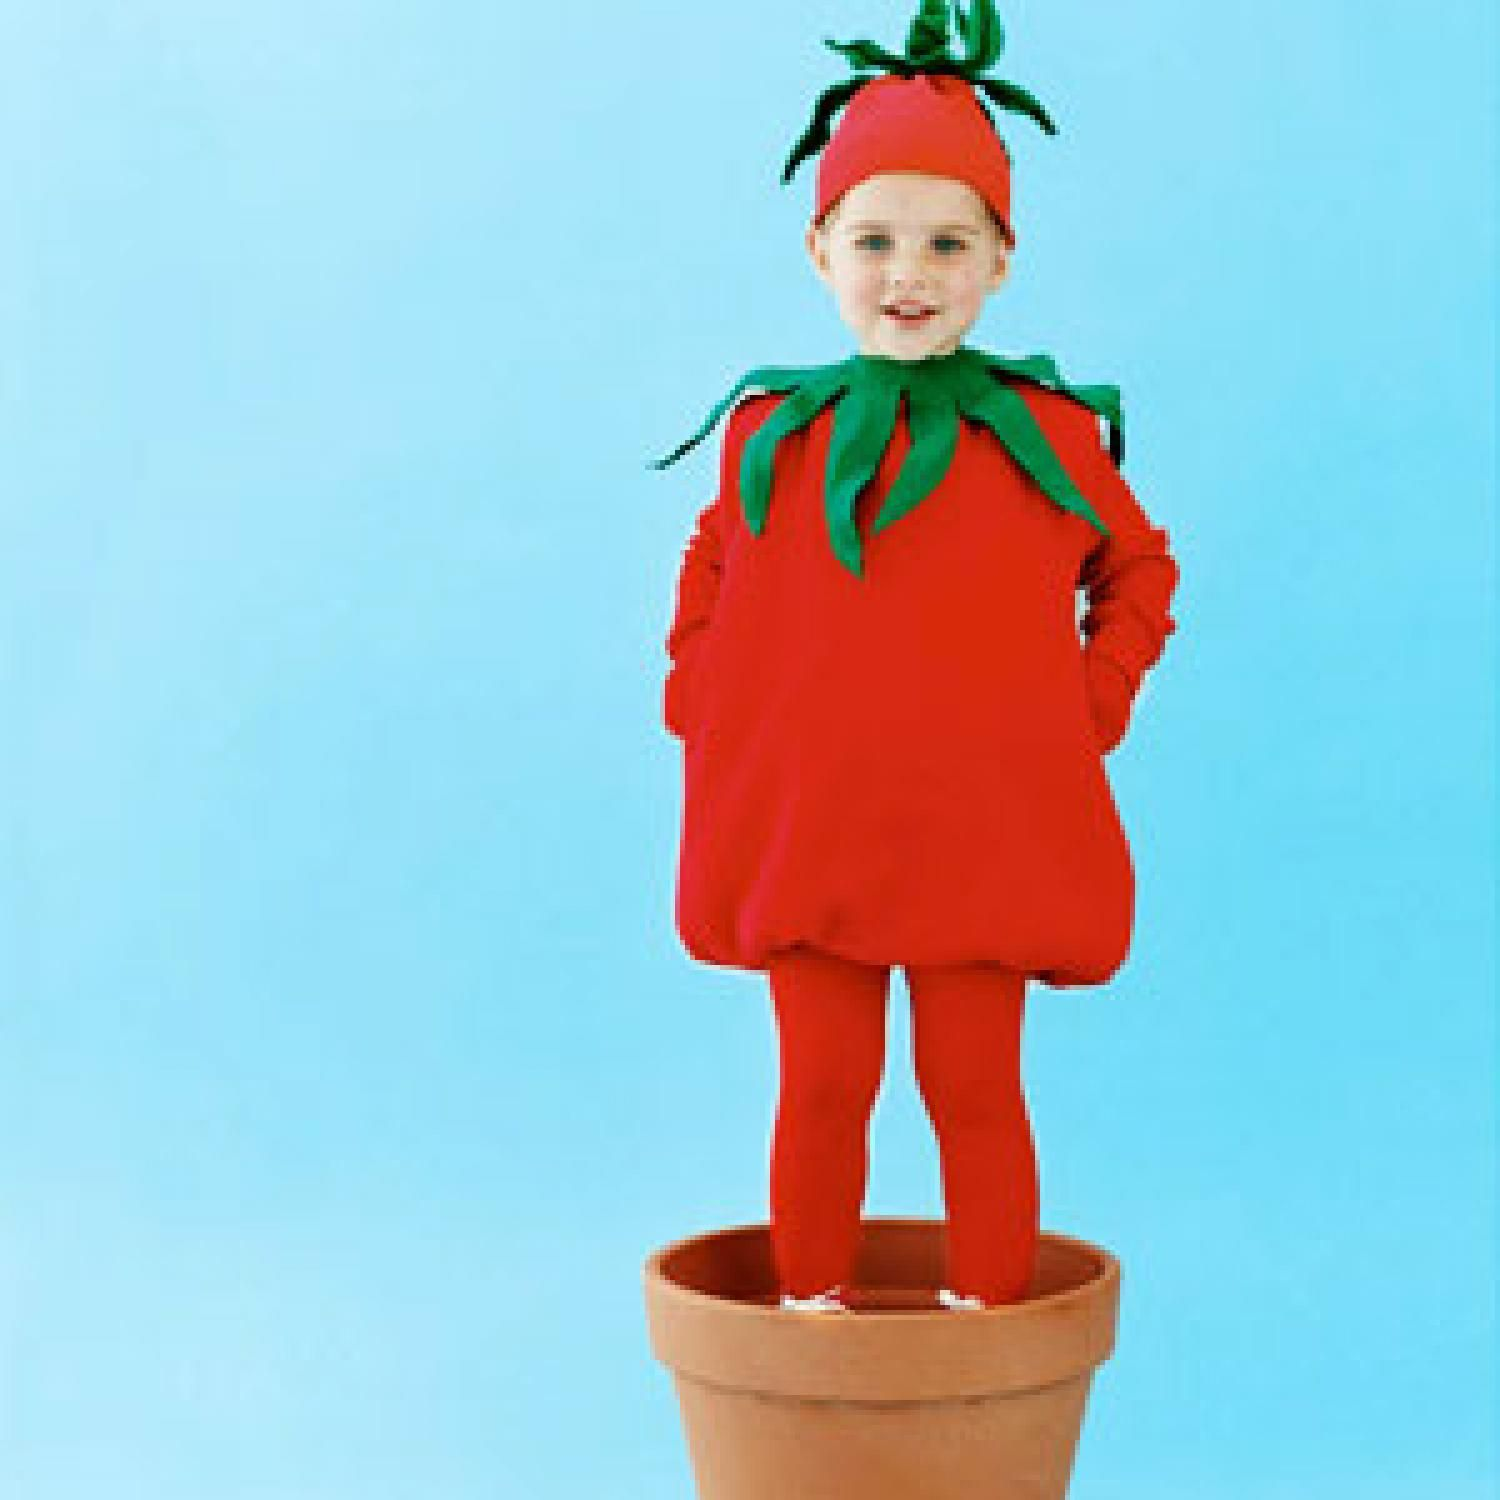 Carrot costume for a girl with her own hands (photo)